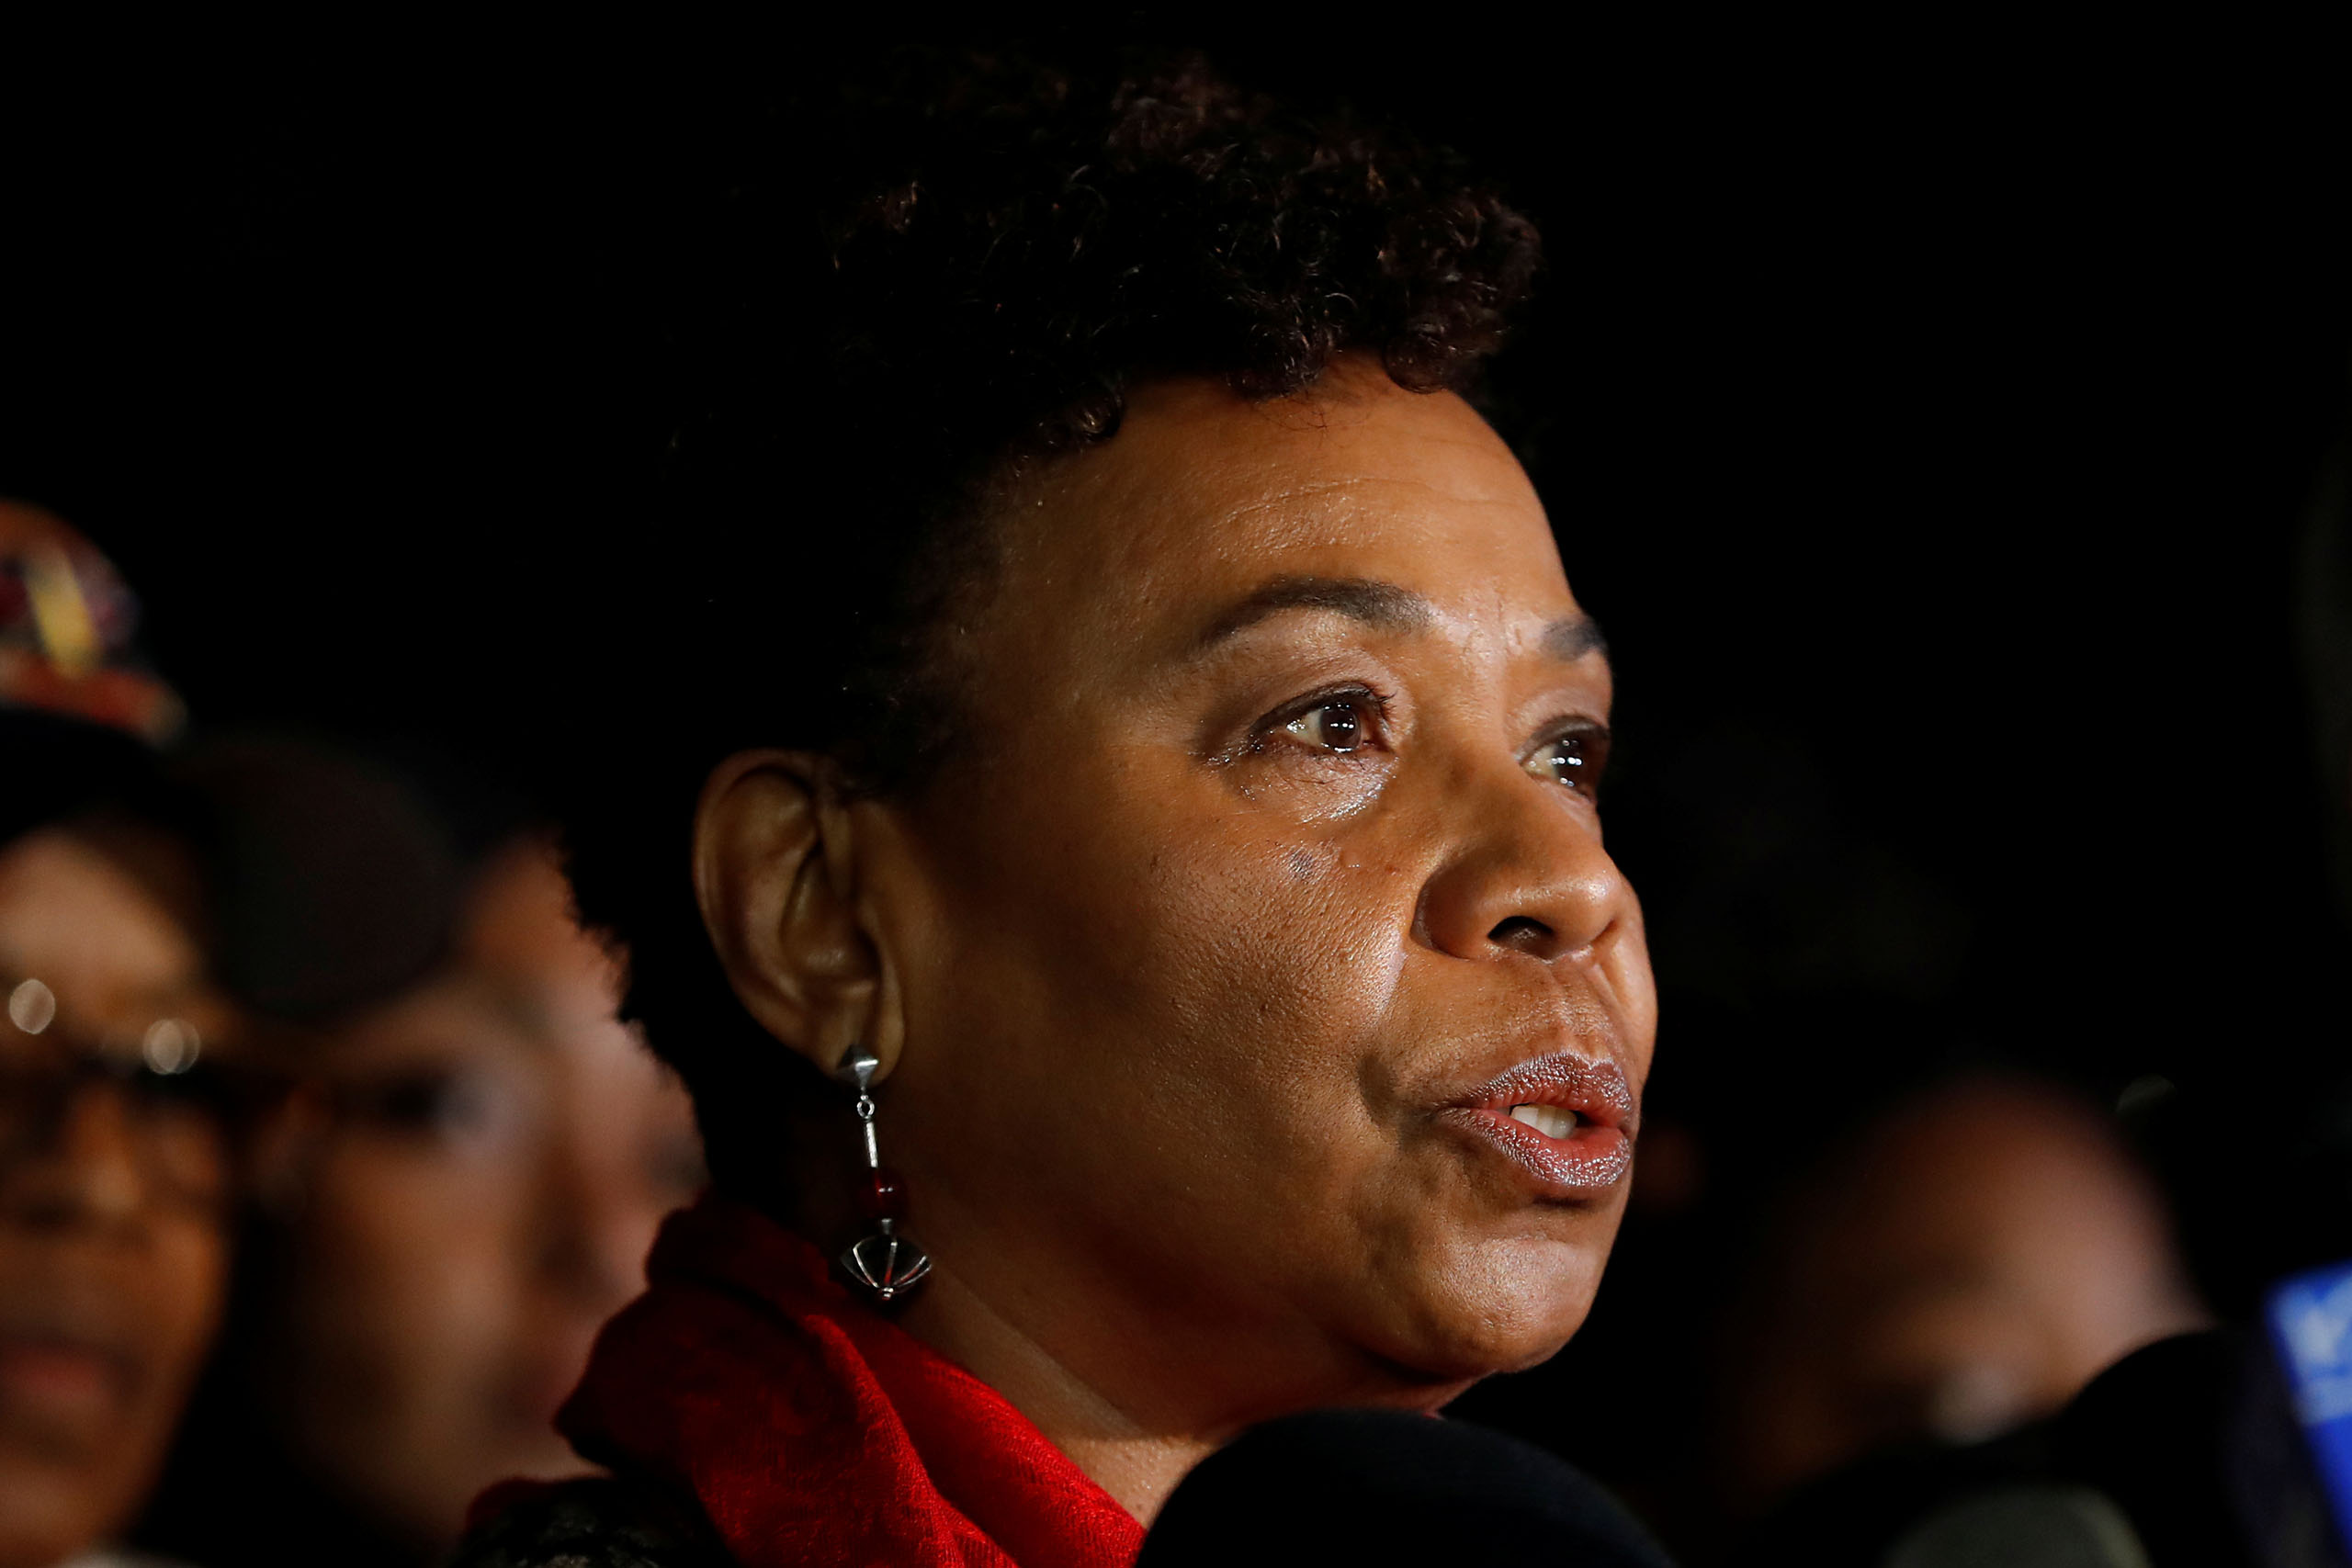 Rep. Barbara Lee as she speaks during a press briefing on the fatal warehouse fire in Oakland, Calif., on Dec. 6, 2016.